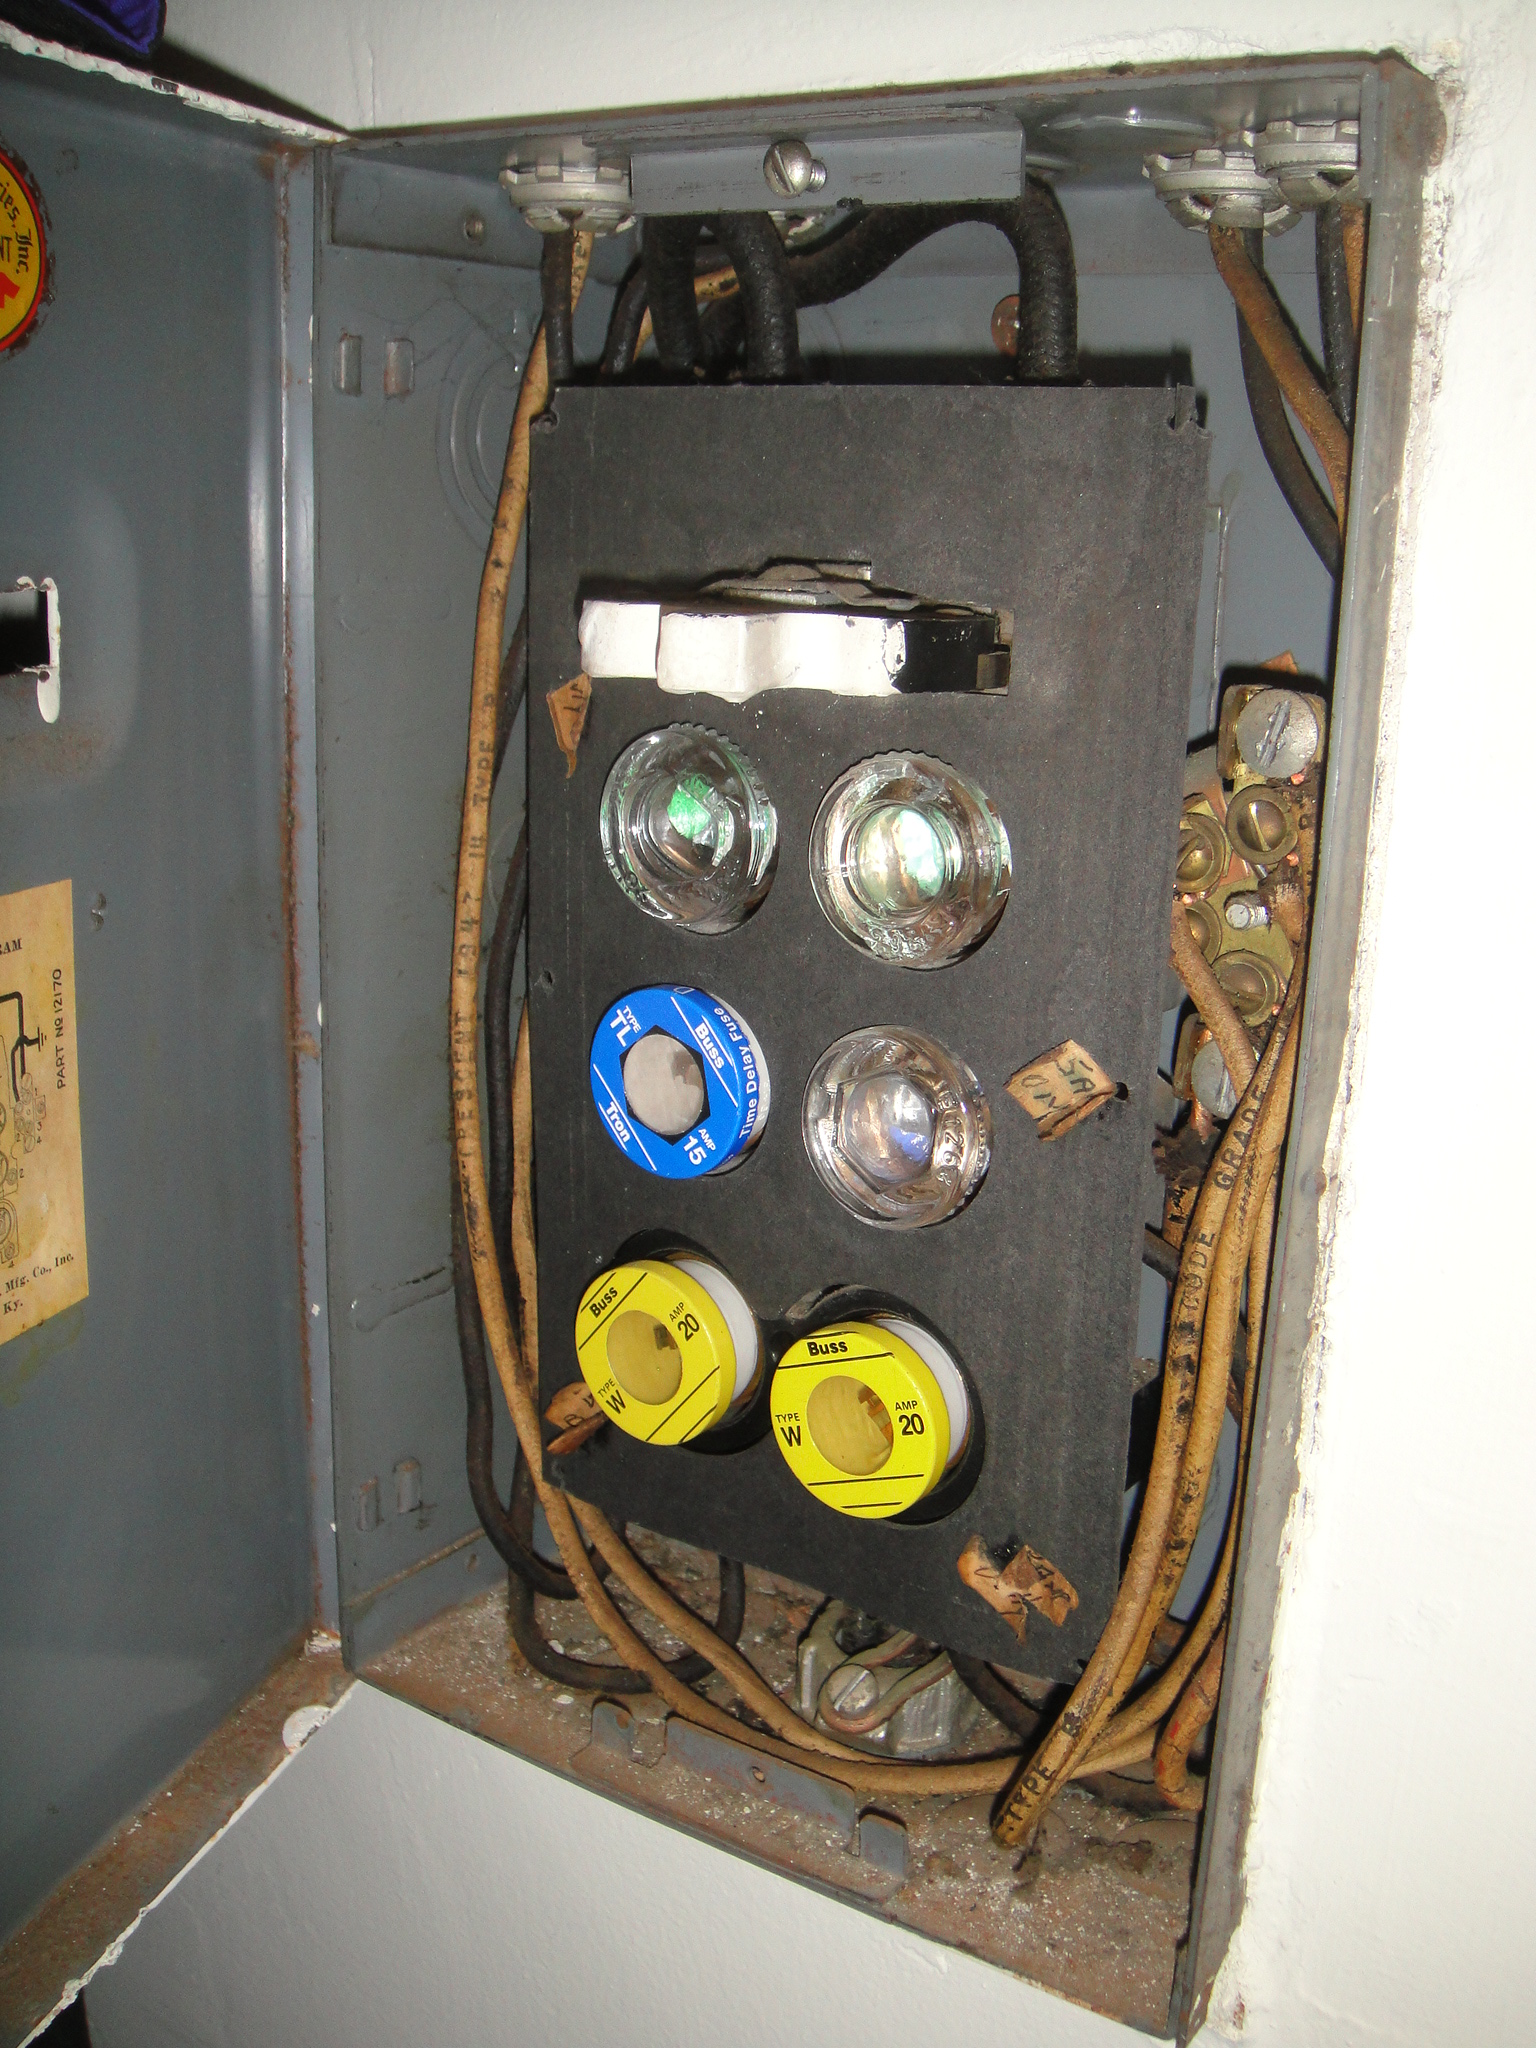 New Circuit Breakers Prevent House Fires - Home Inspector San Diego and  Orange CountyThe Real Estate Inspection Company